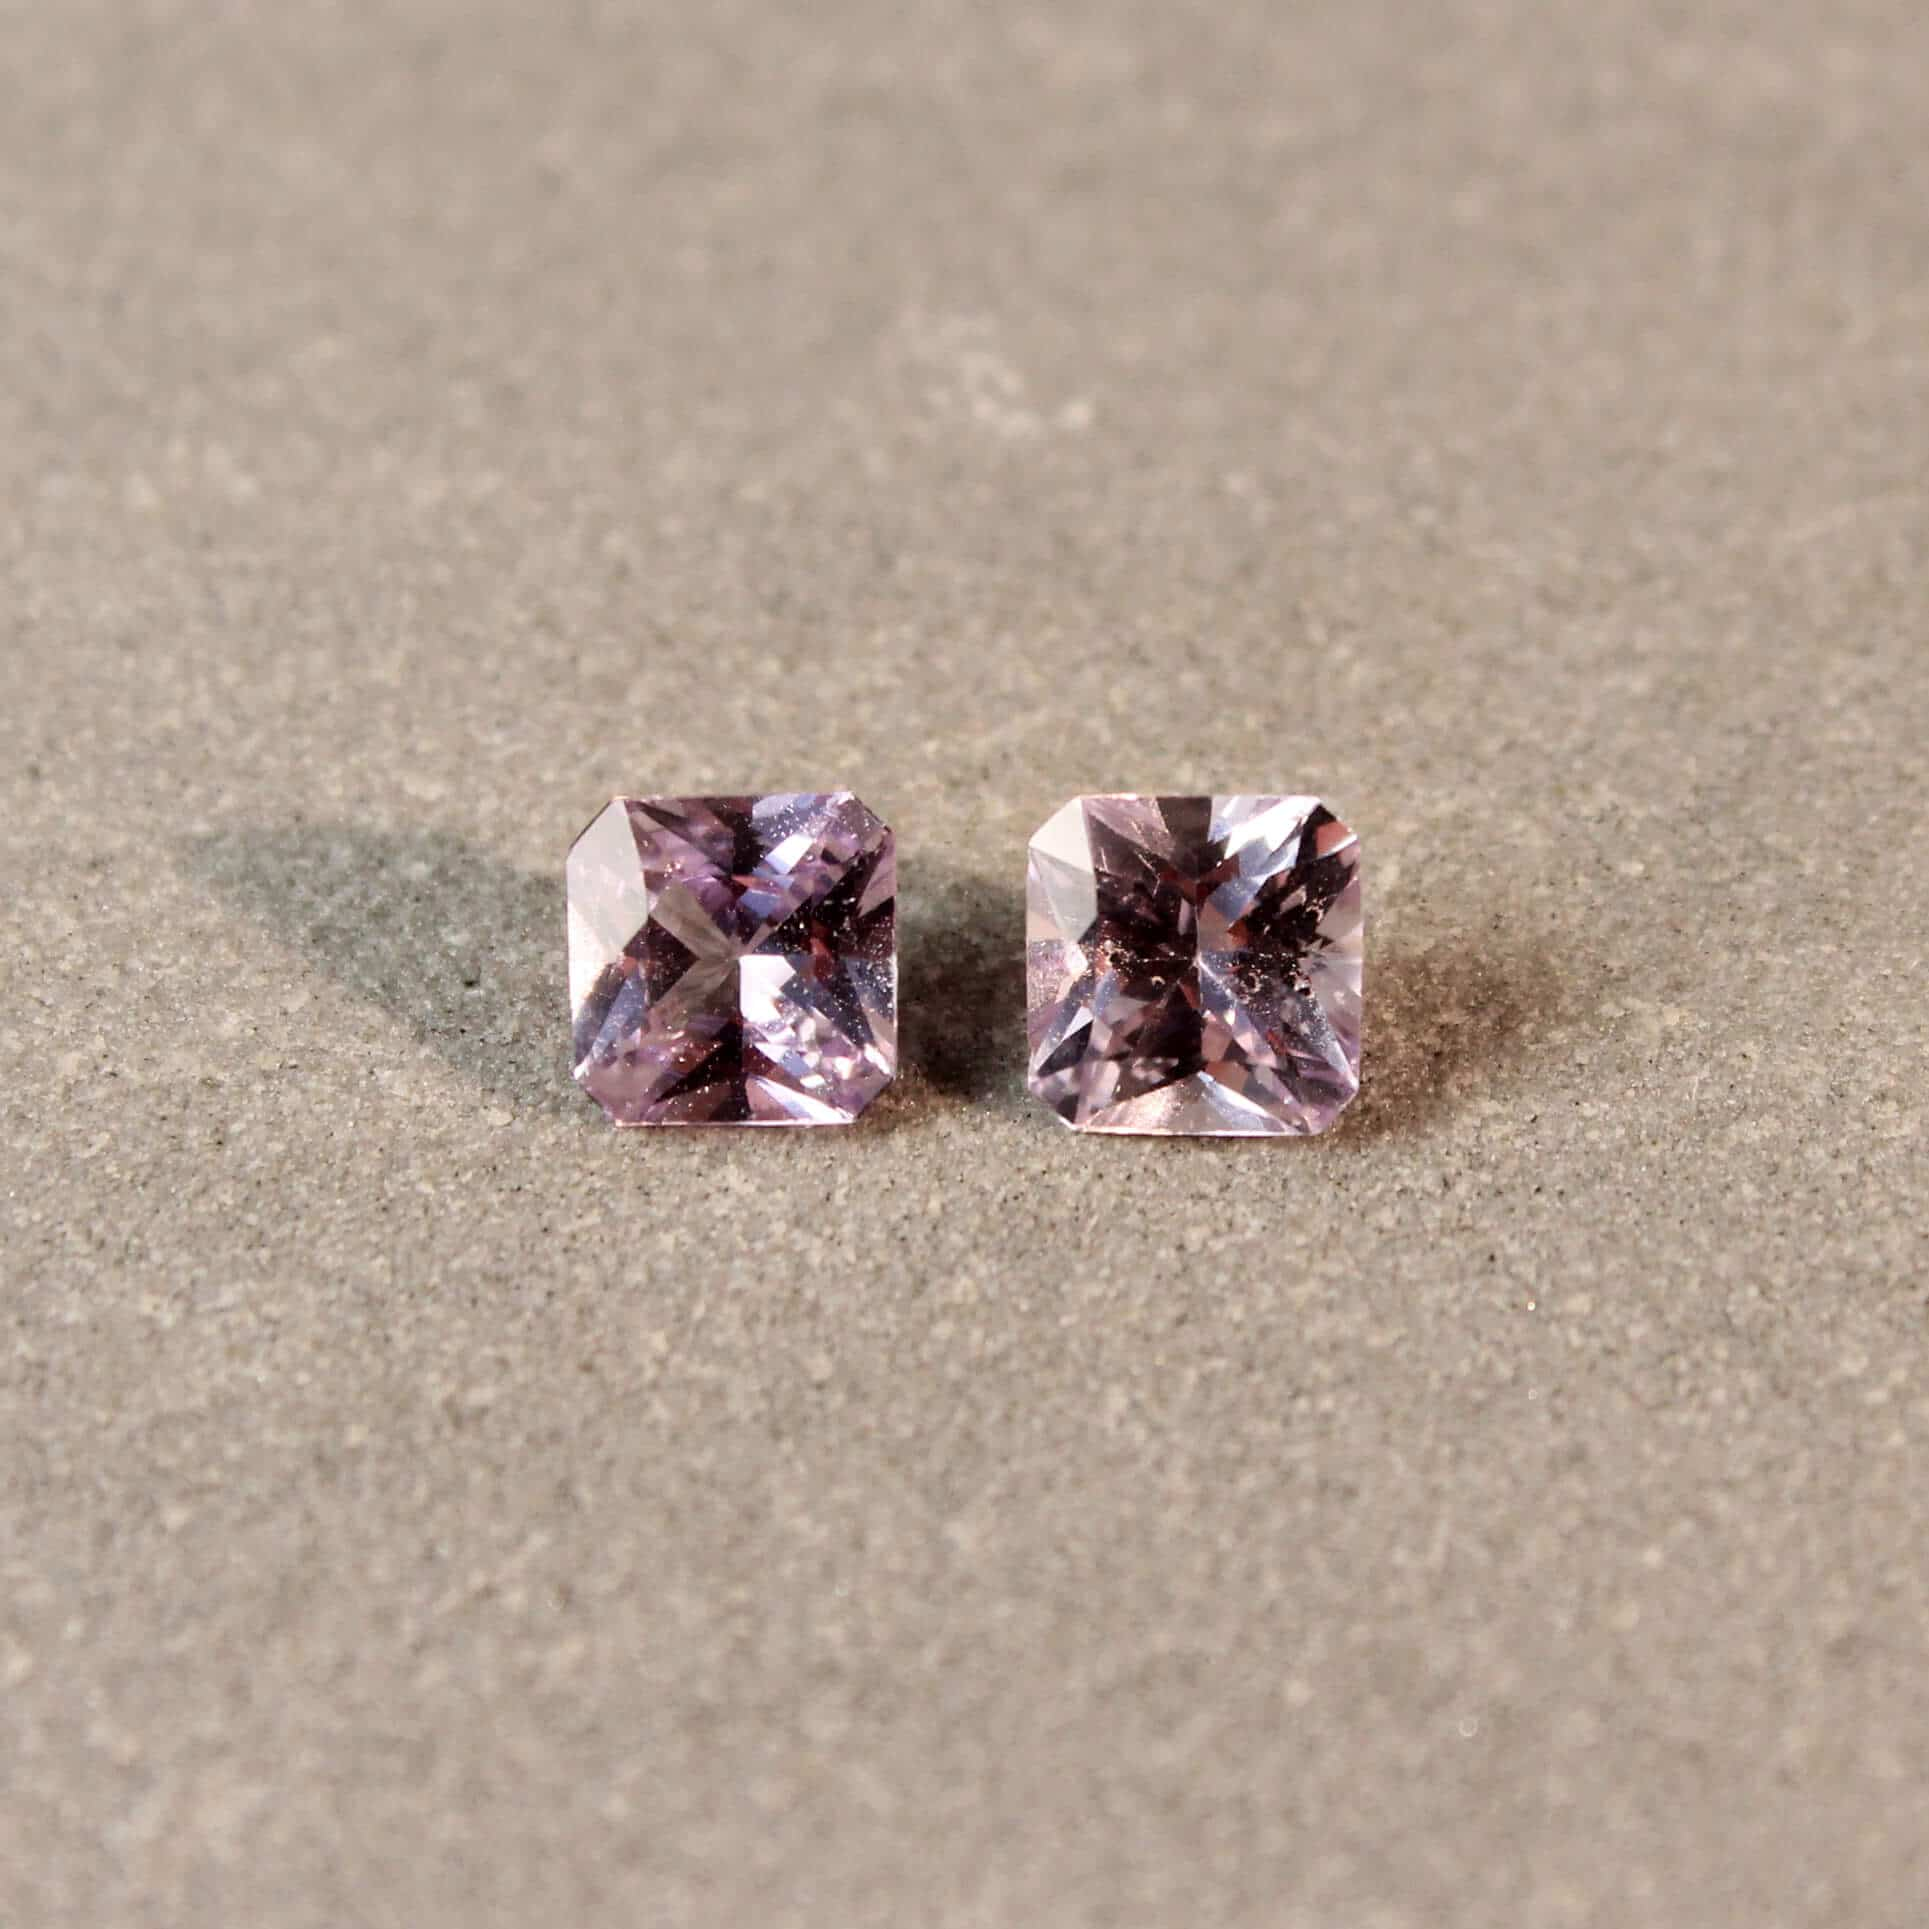 1.38 ct light purple radiant sapphire pair